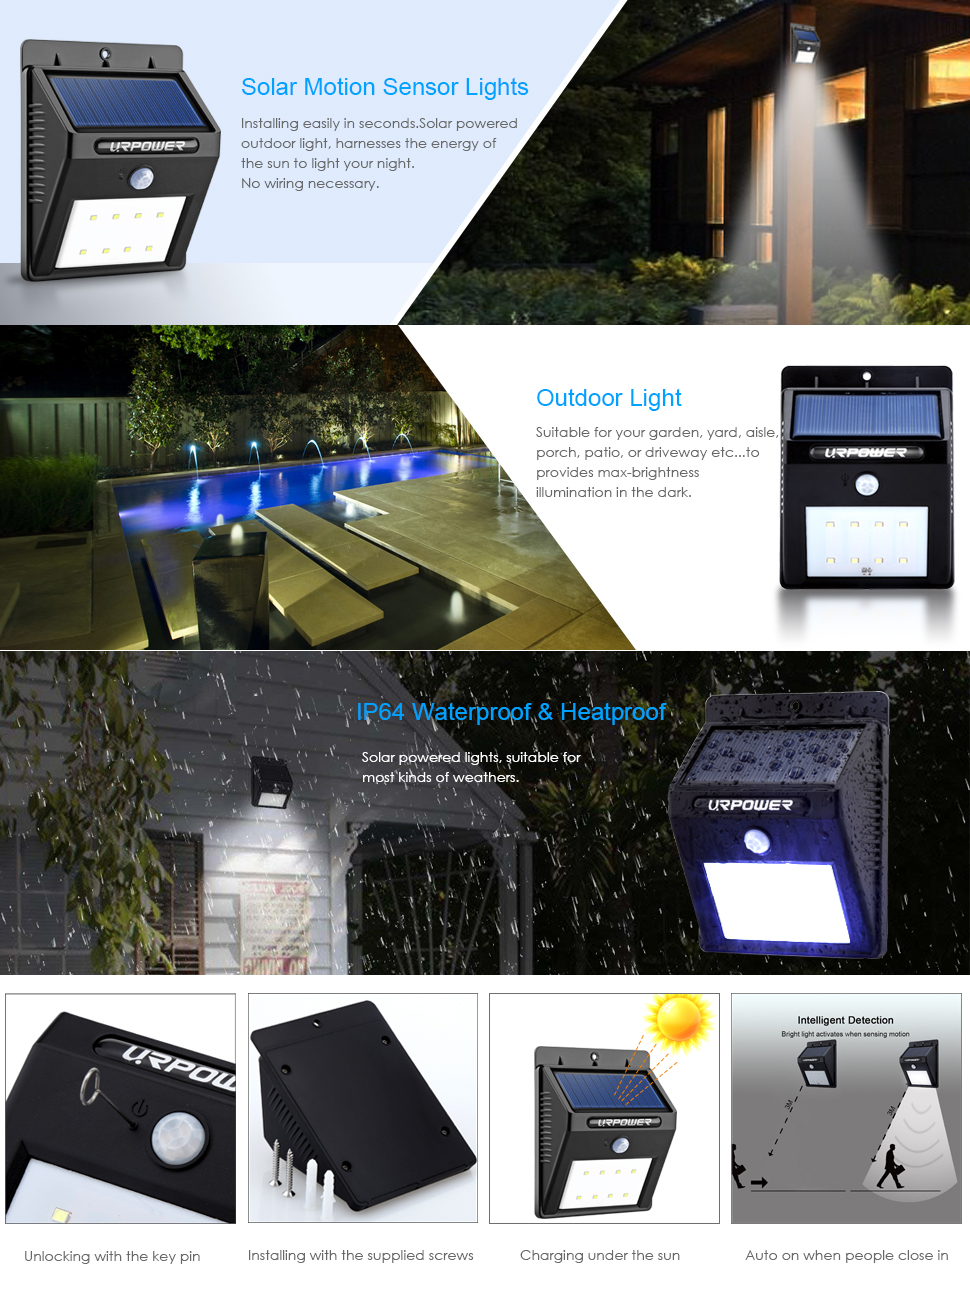 Urpower solar lights 8 led wireless waterproof motion sensor outdoor 8 led is for 8 lamp beads in one light not for 8 lights please install the unit face south and make sure the solar panel can aloadofball Image collections